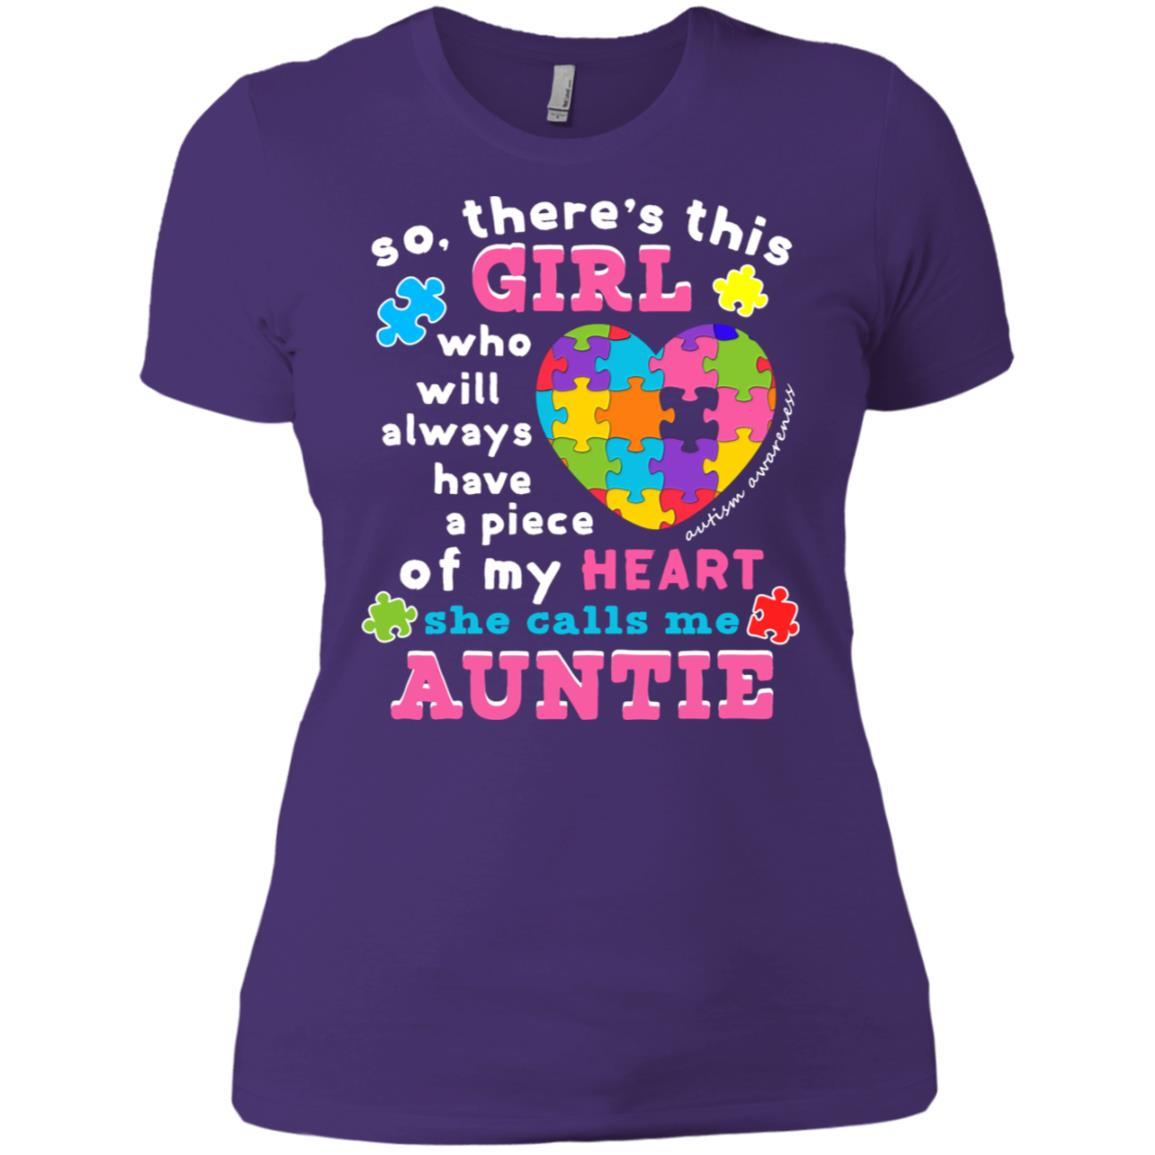 Womens Theres a girl She calls me Auntie Wear Autism Puzzle Women Short Sleeve